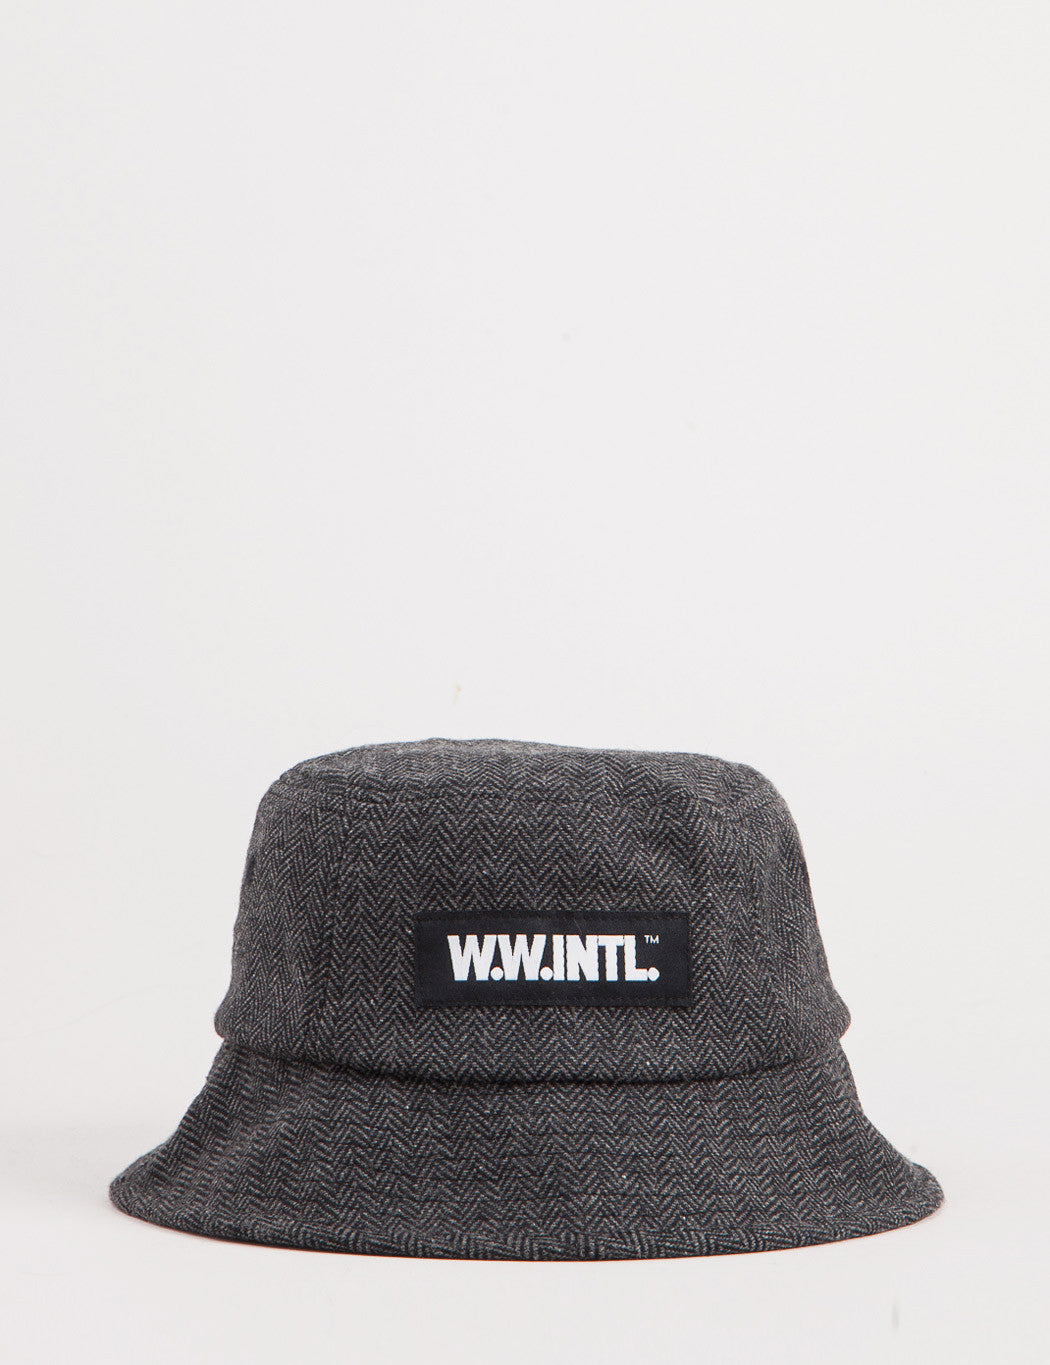 Wood Wood INTL Tweed Bucket Hat - Dark Grey